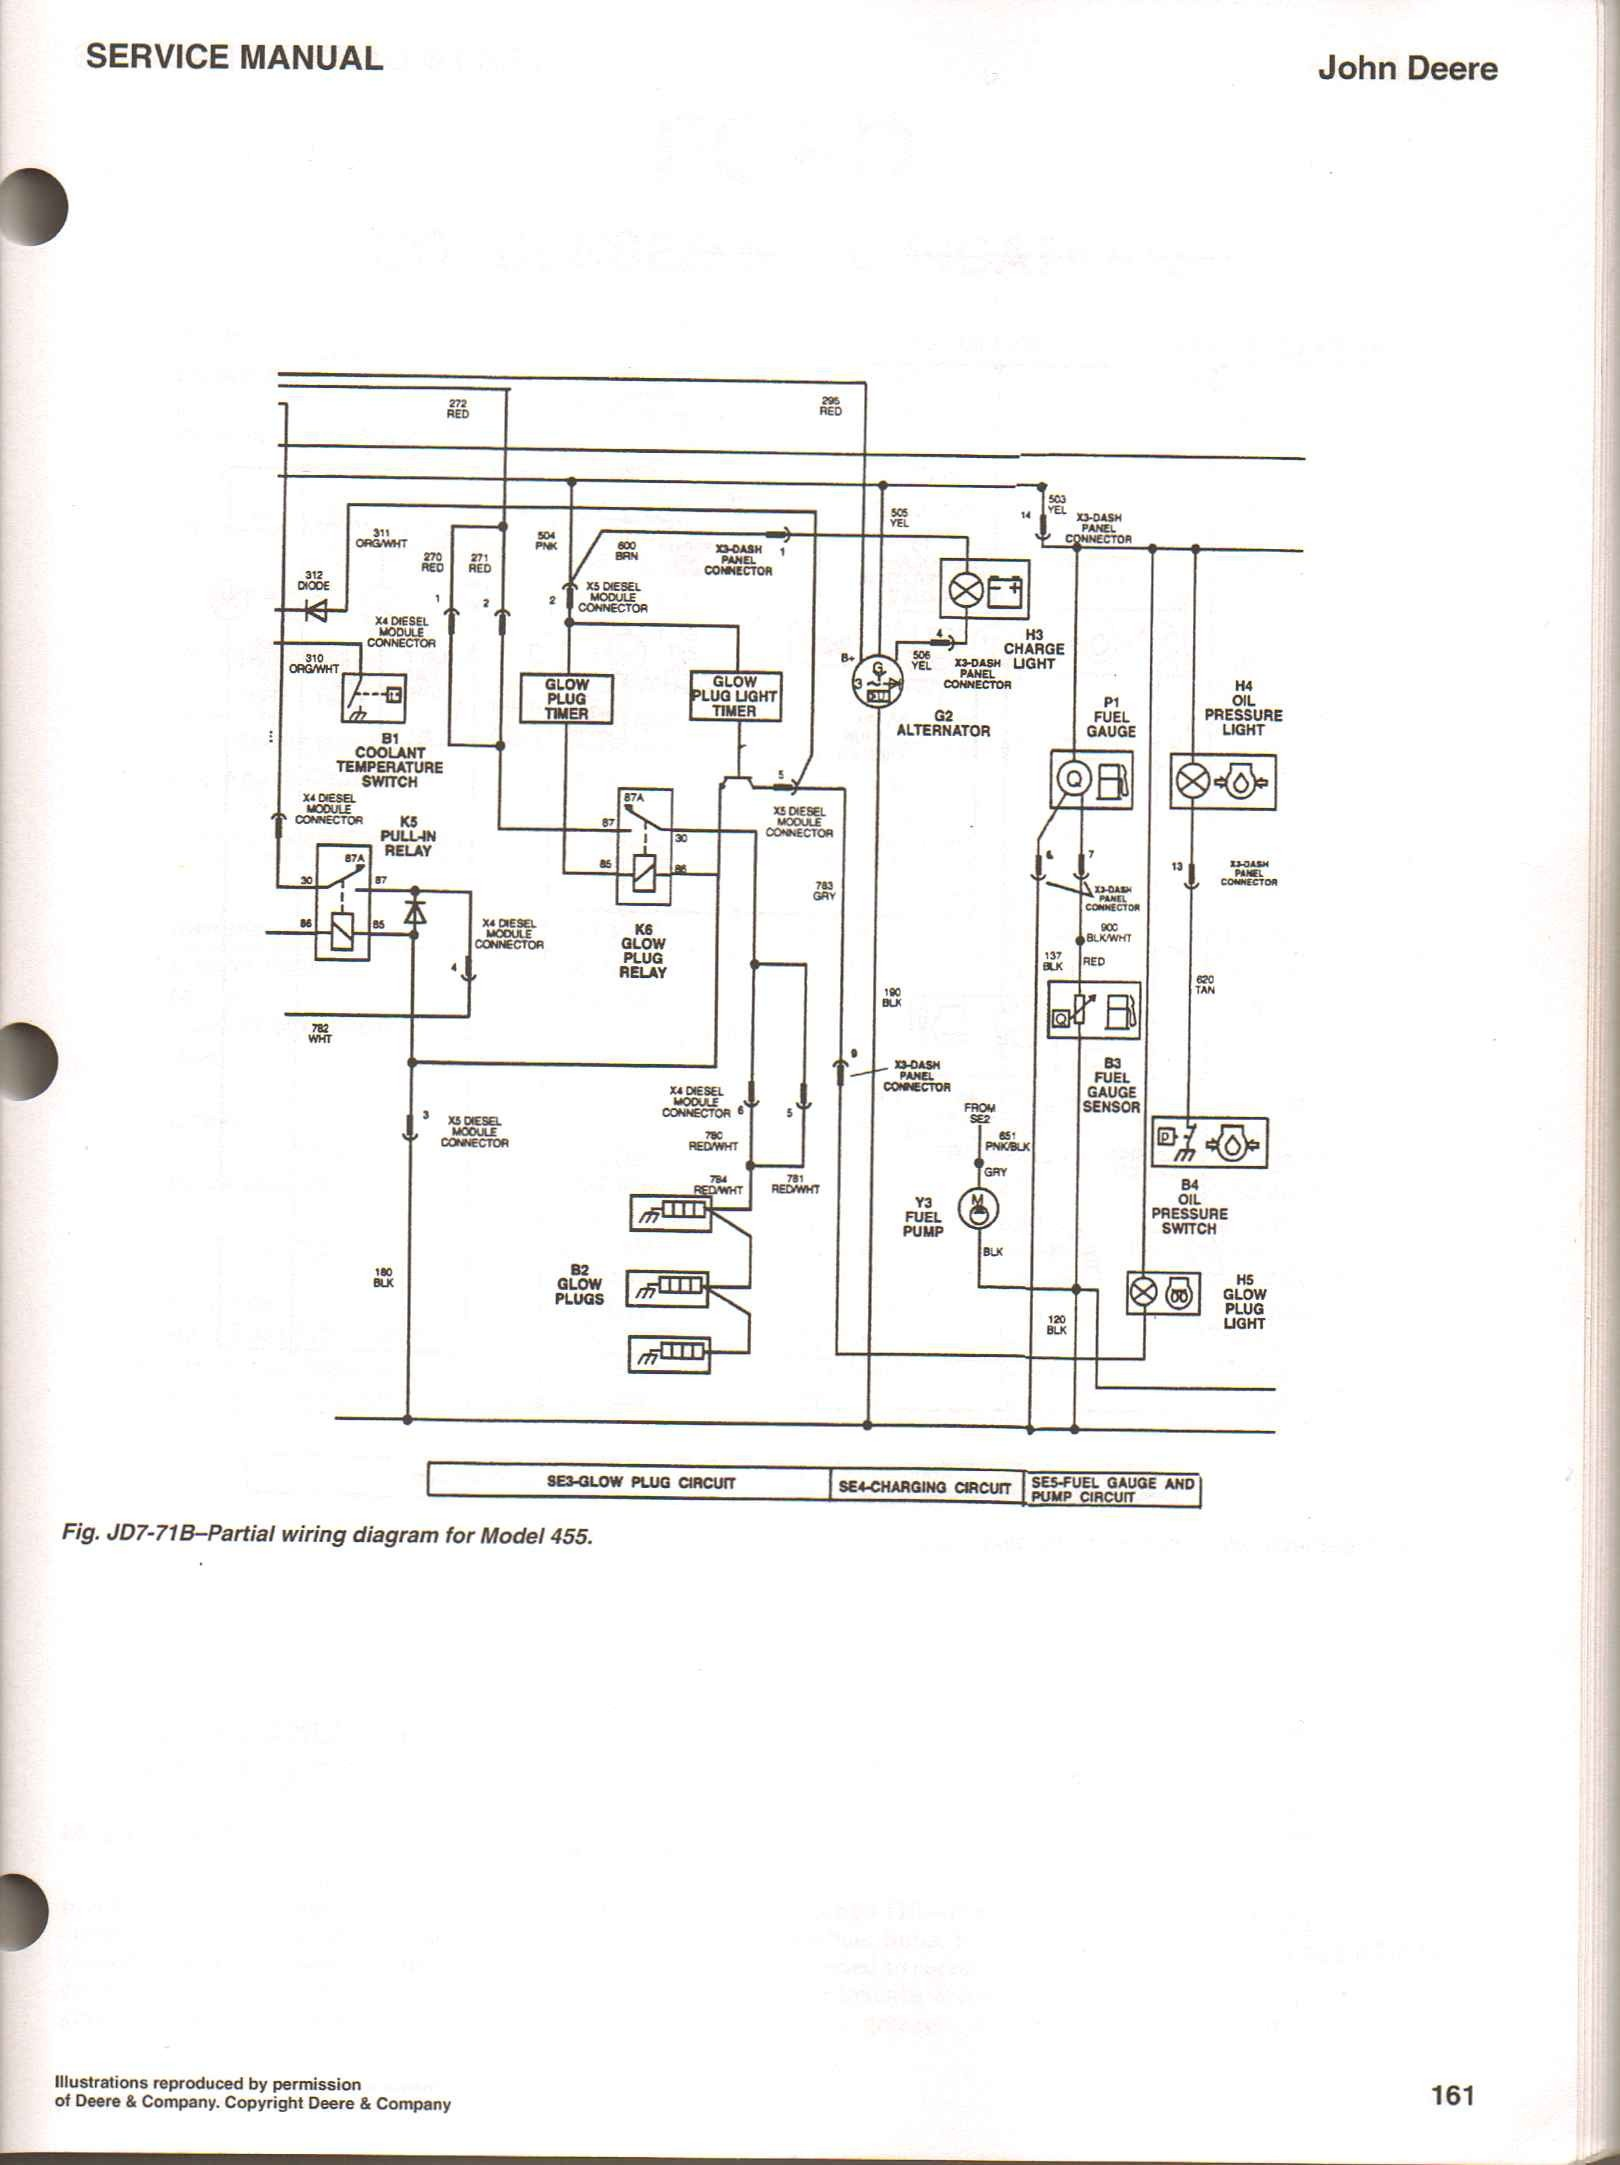 John Deere 4020 Wiring Diagram 4020 Lp Wiring Diagram Of John Deere 4020 Wiring Diagram